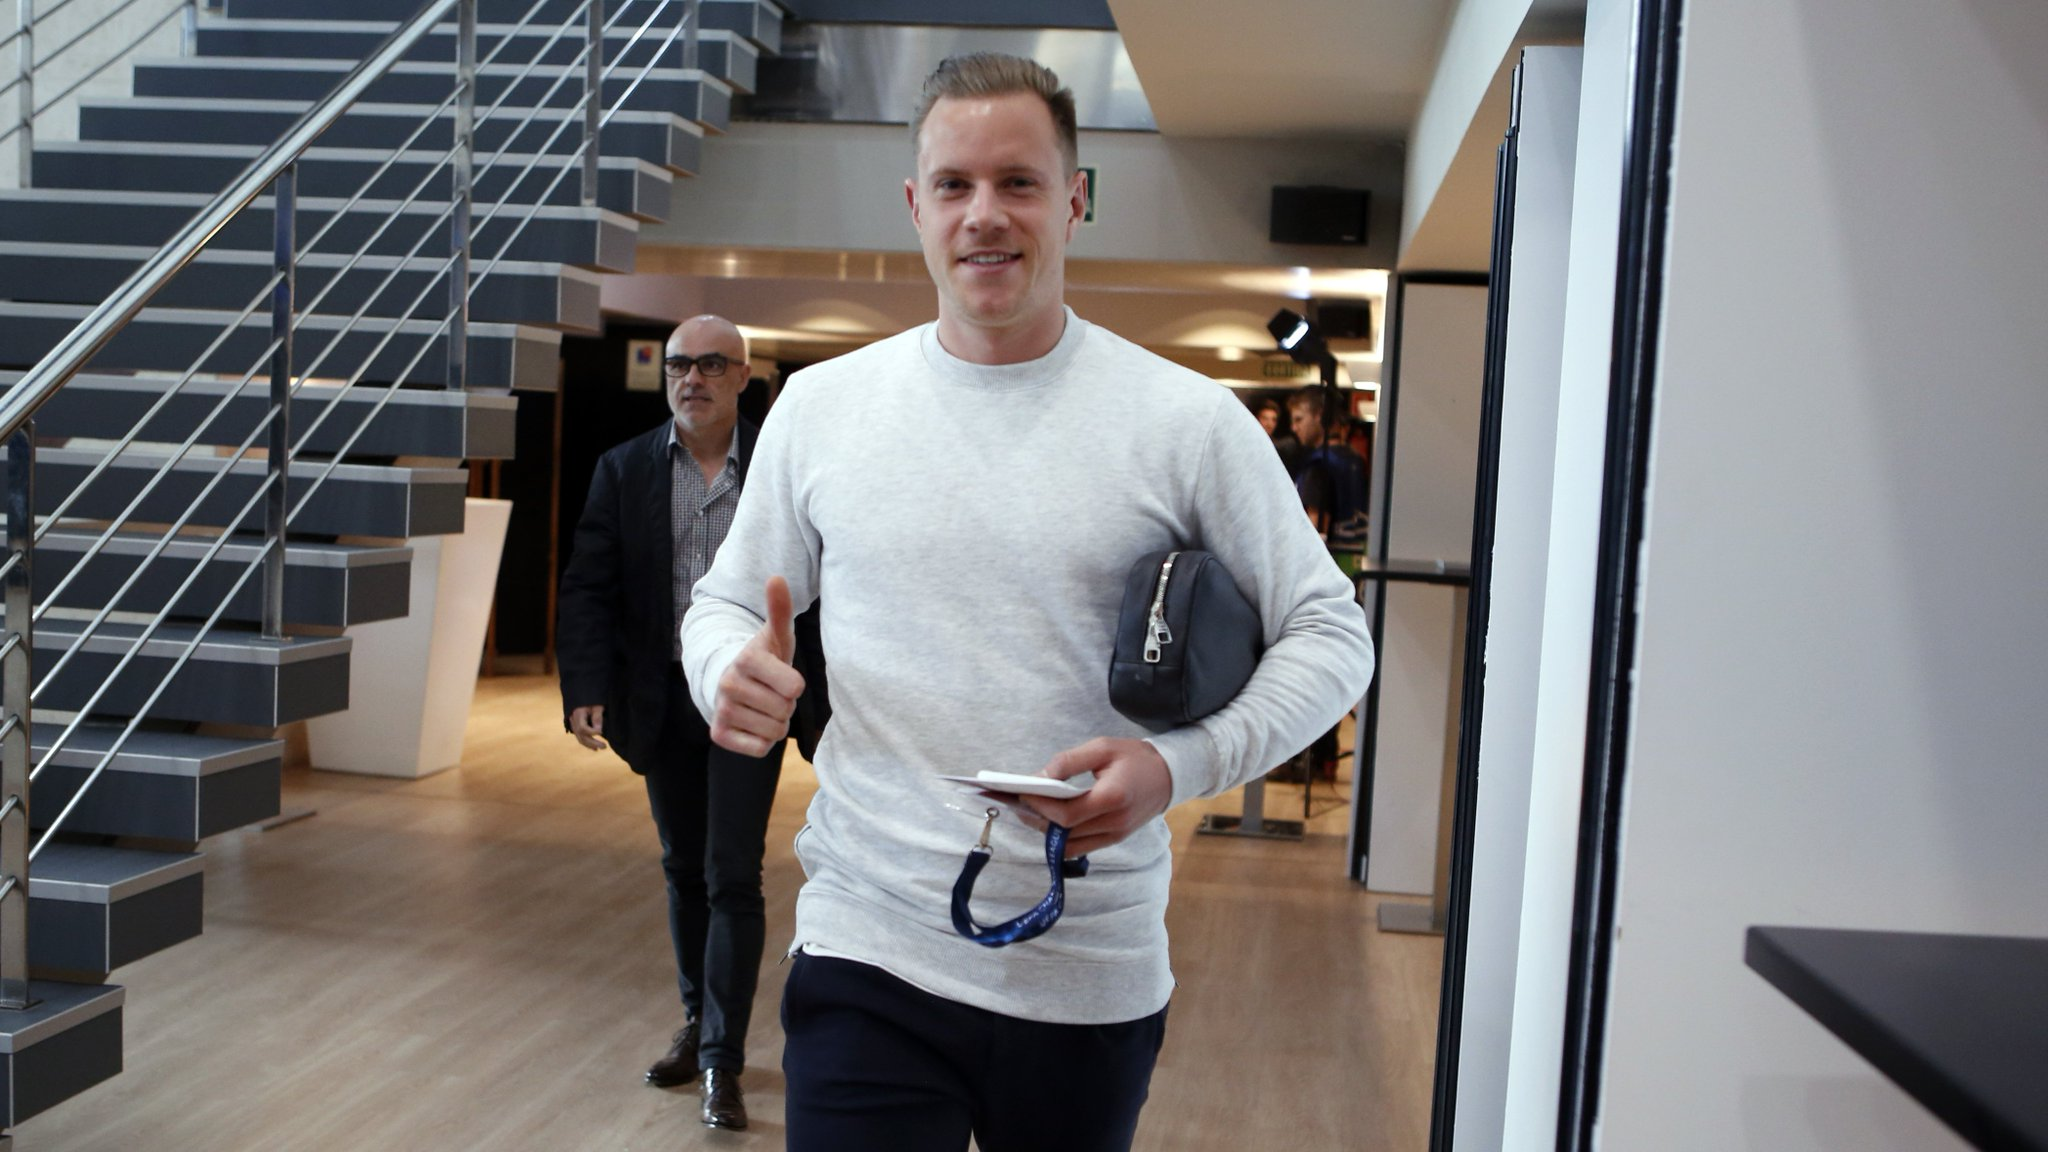 �� Quick-fire Q&A with @mterstegen1 https://t.co/Wlq7RUjw7V